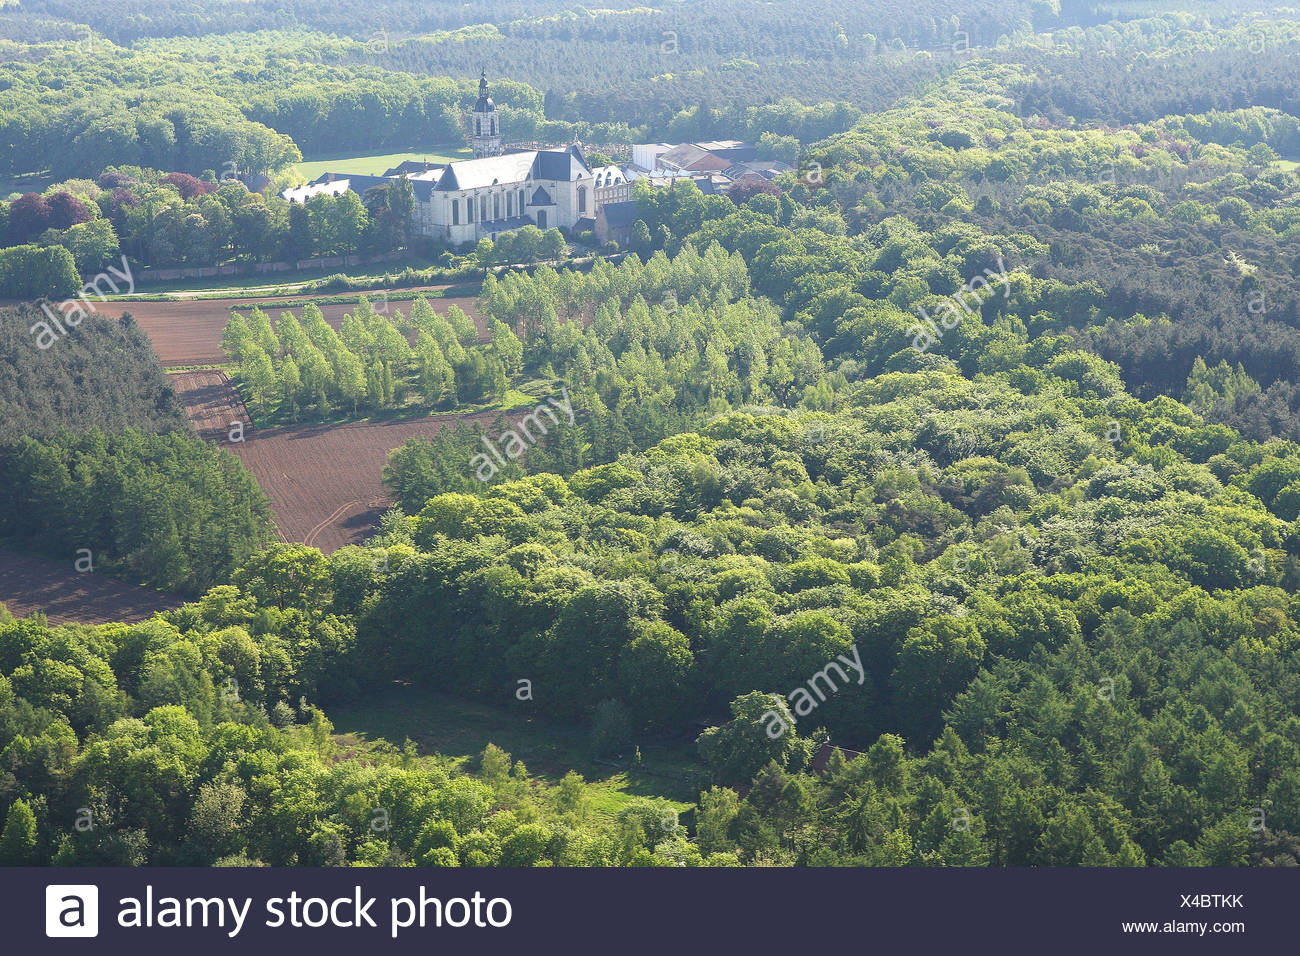 Bos vanuit de lucht, Belgi Mixed forest from the air, Belgium - Stock Image